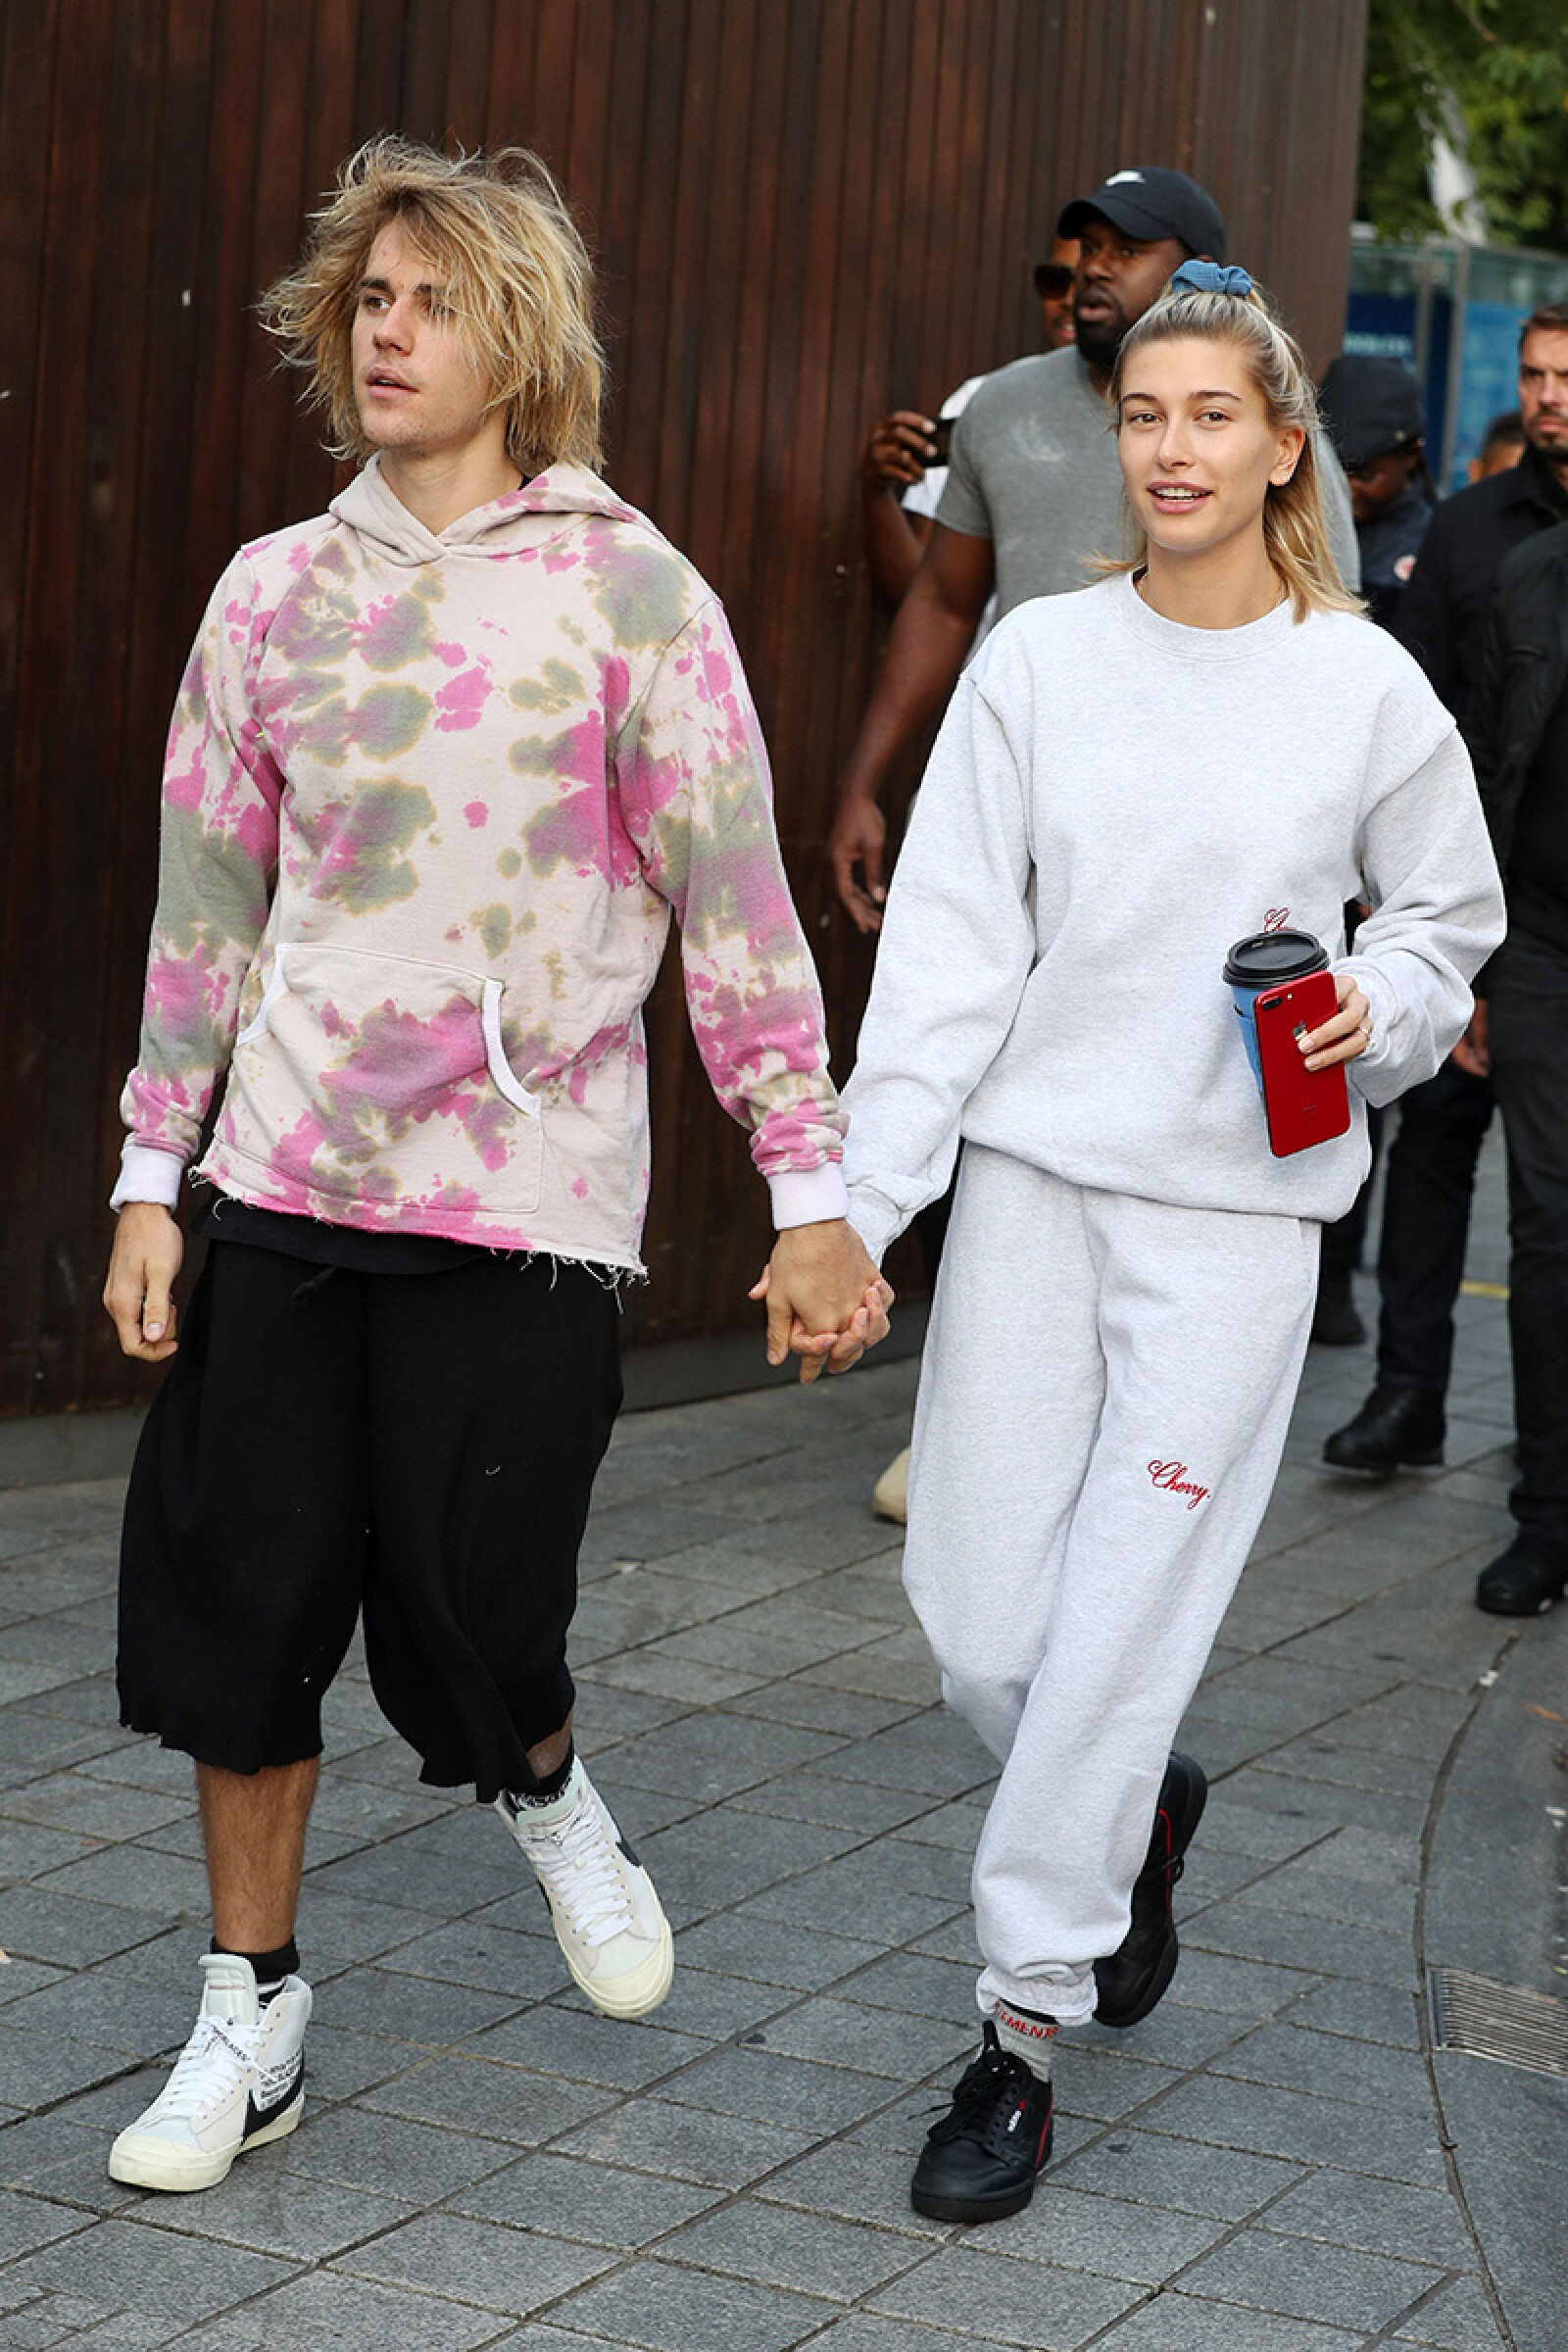 Justin Bieber and Hailey Baldwin out and about, London, UK - 18 Sep 2018